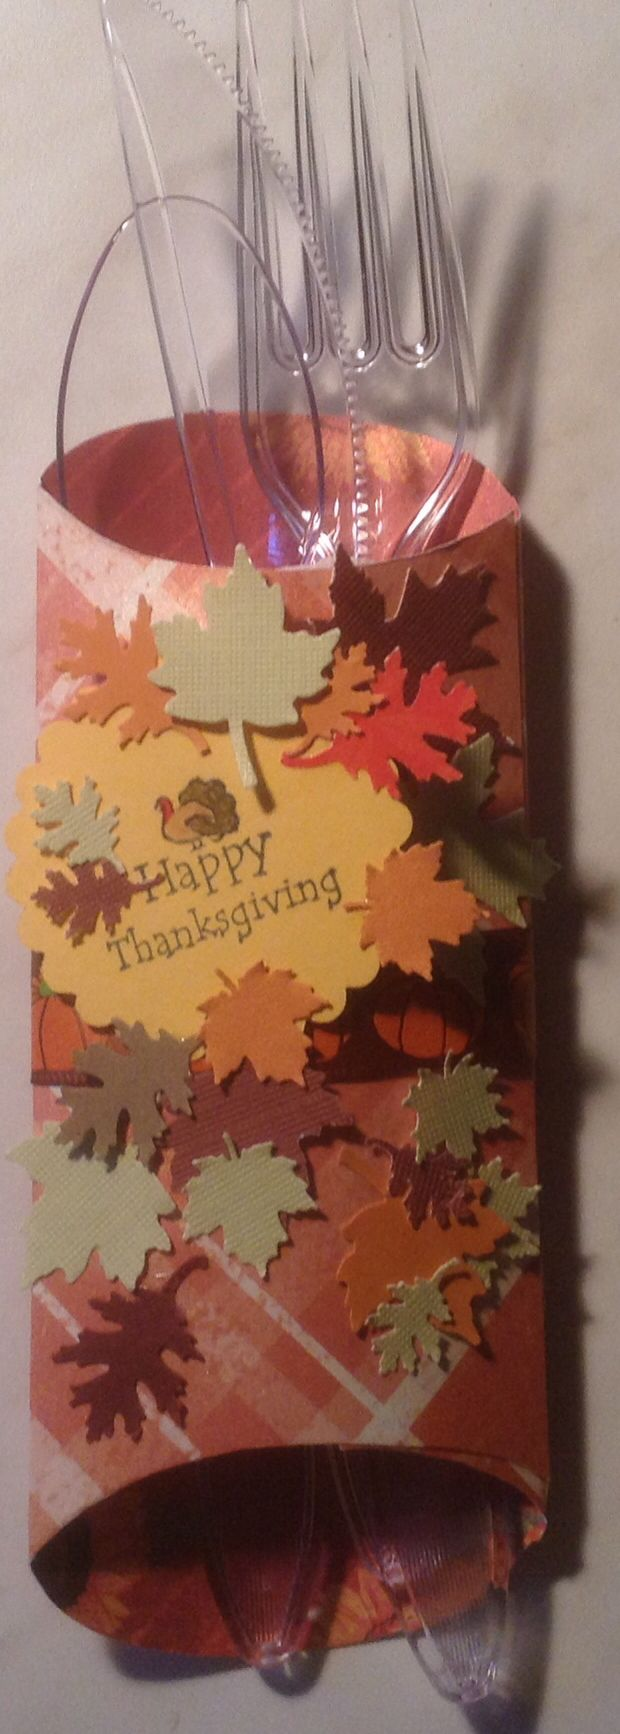 Utensil wrap for Thanksgiving or any fall related event. Made using a pillow box punch & 36 best Cards: Punch Board Pillow Box images on Pinterest ... pillowsntoast.com